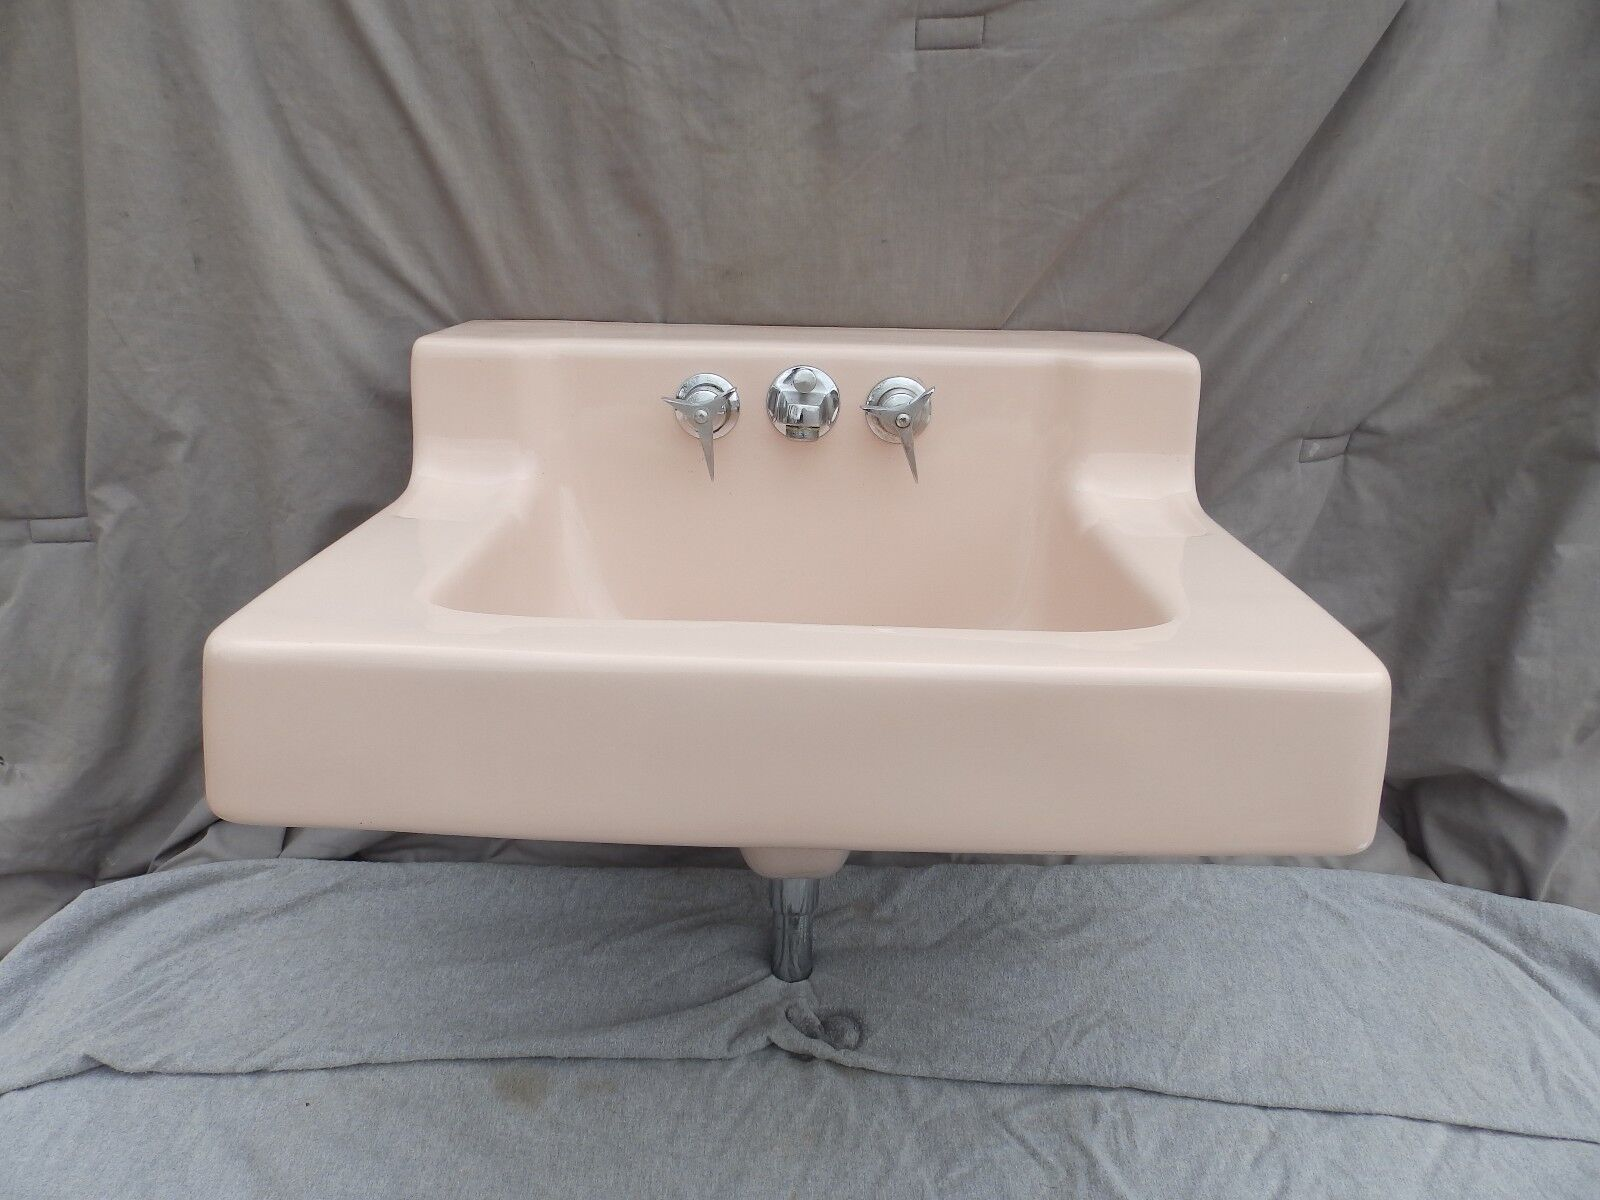 Vtg Ceramic Standard Lite Pink Porcelain Shelf Top Kohler Bathroom Sink 2096-16